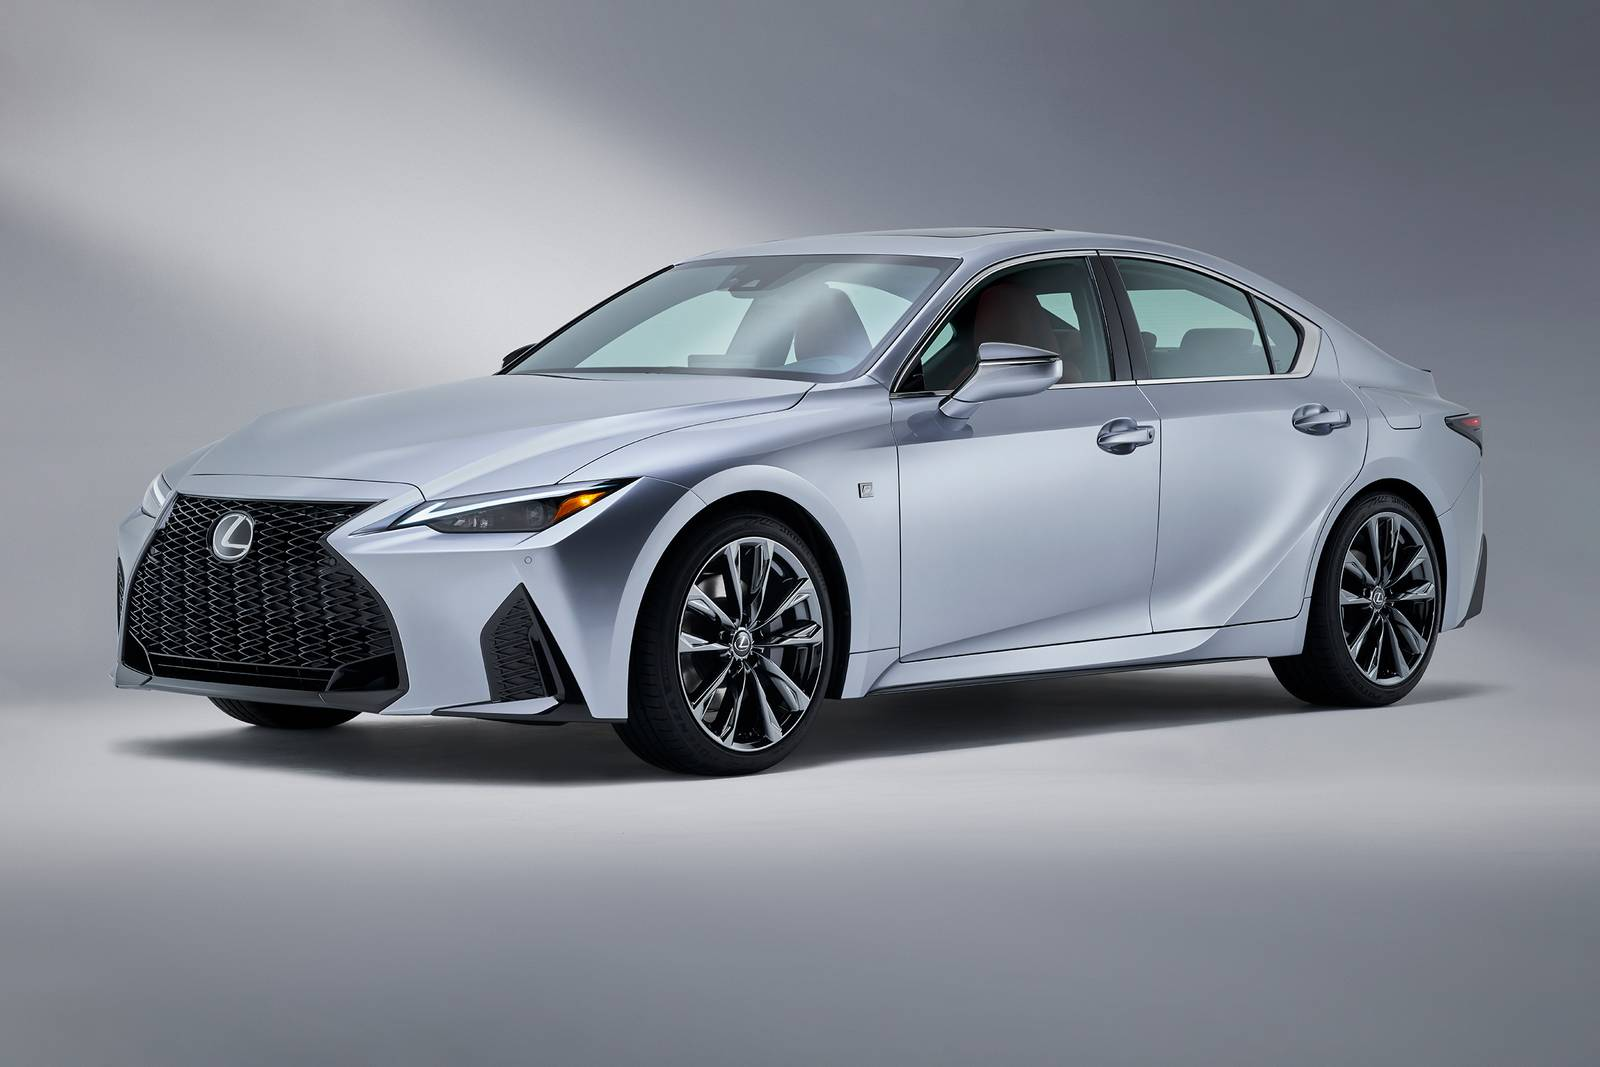 2021 Lexus IS 300 review